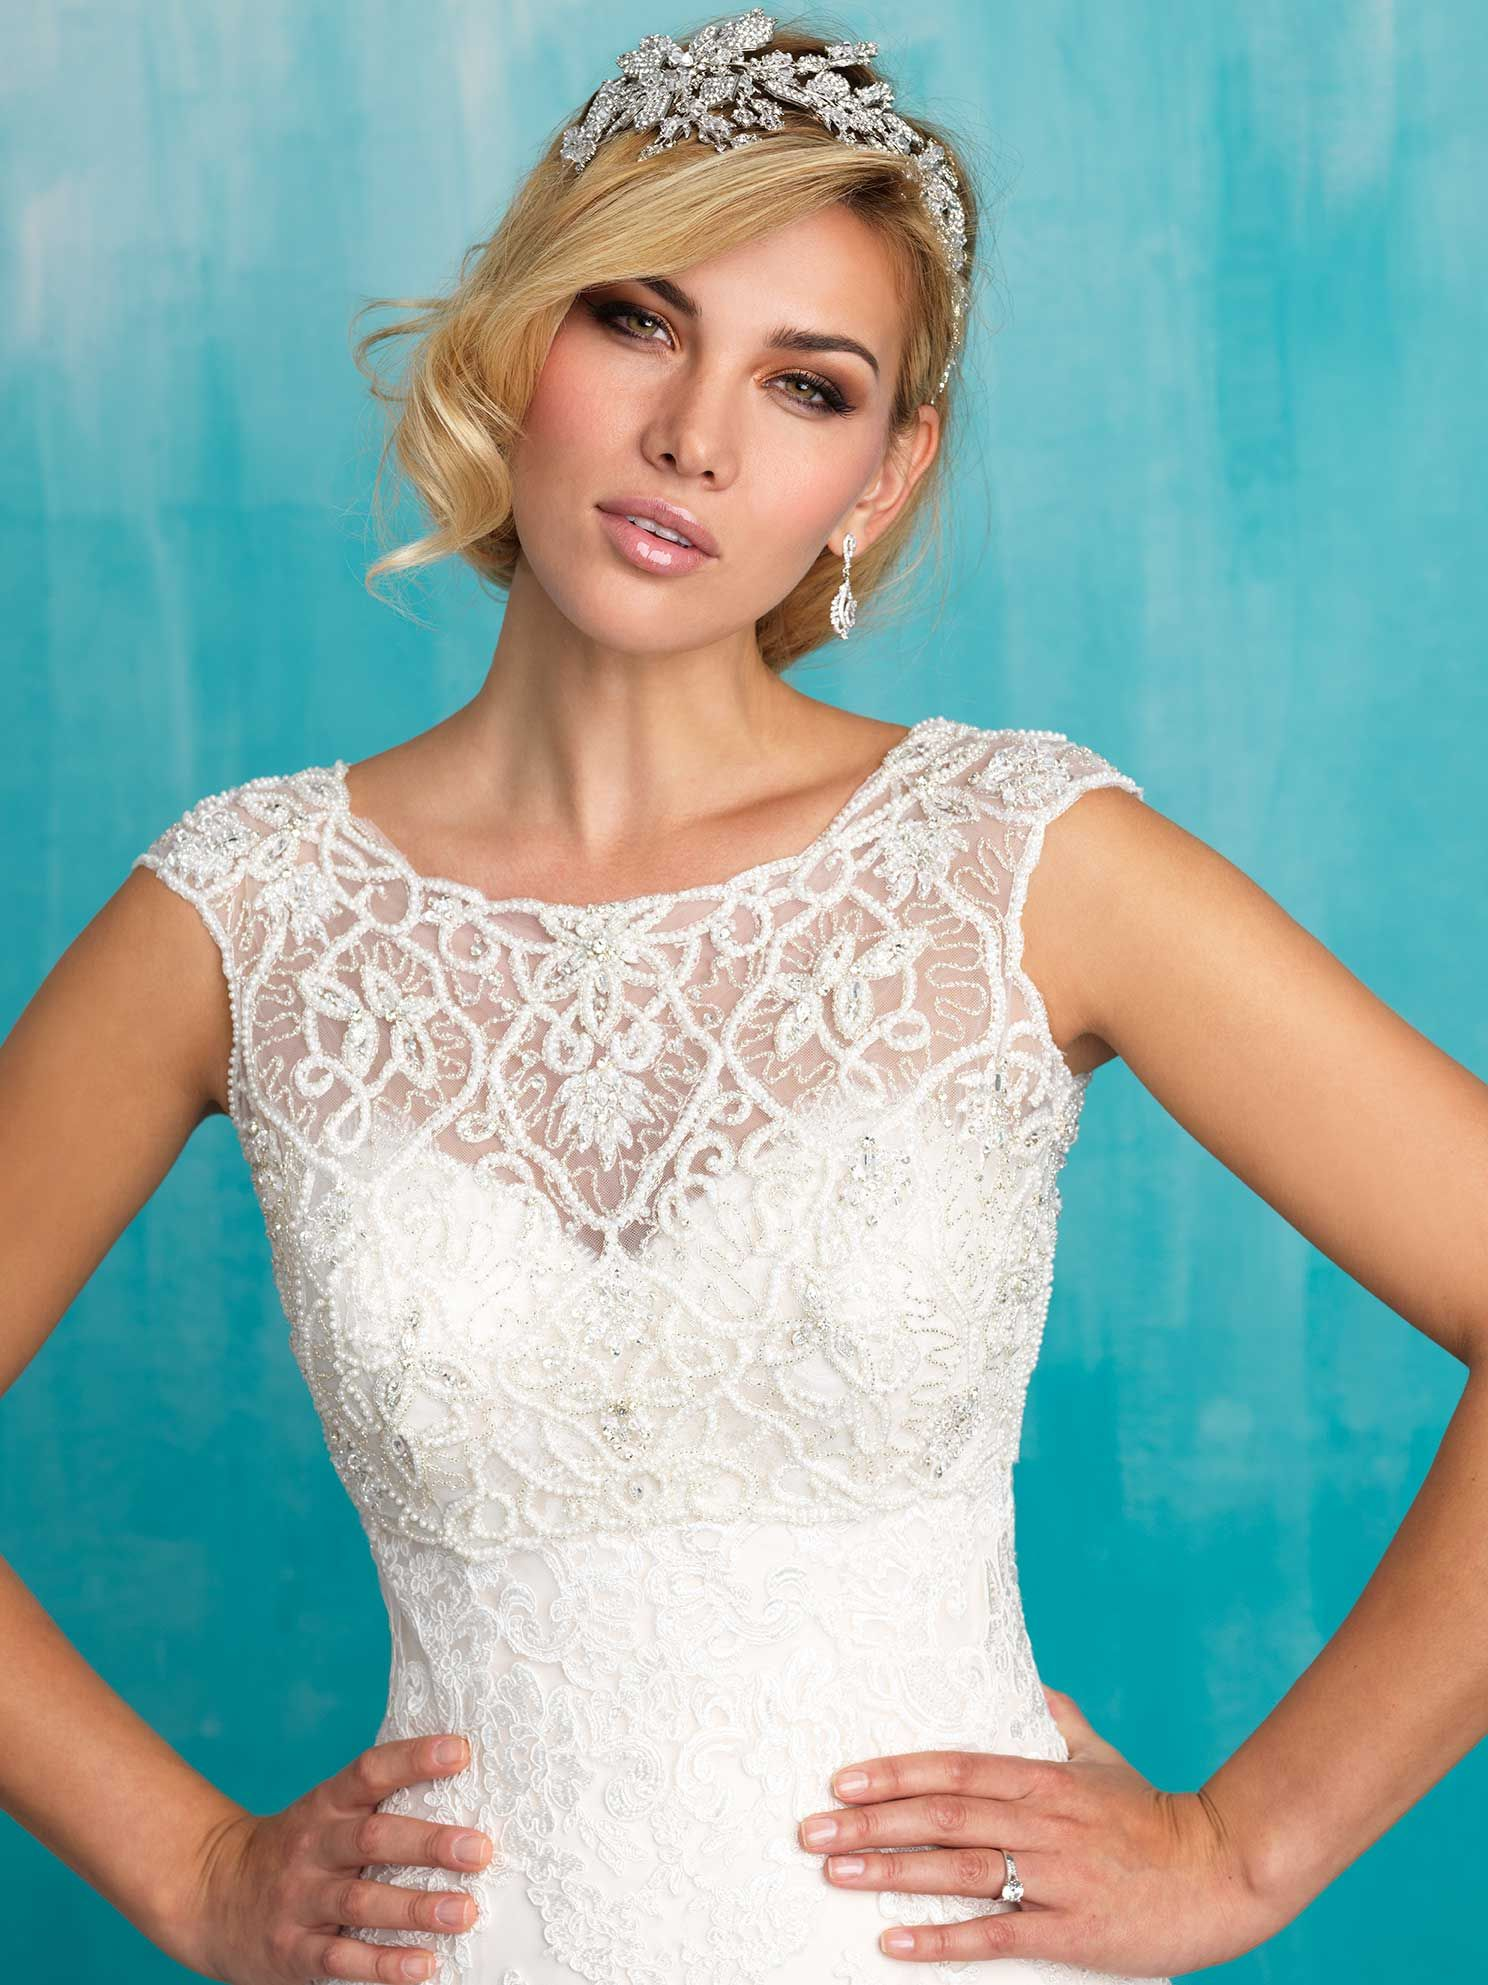 Magnificent Dress With Jacket For Wedding Contemporary - Wedding ...